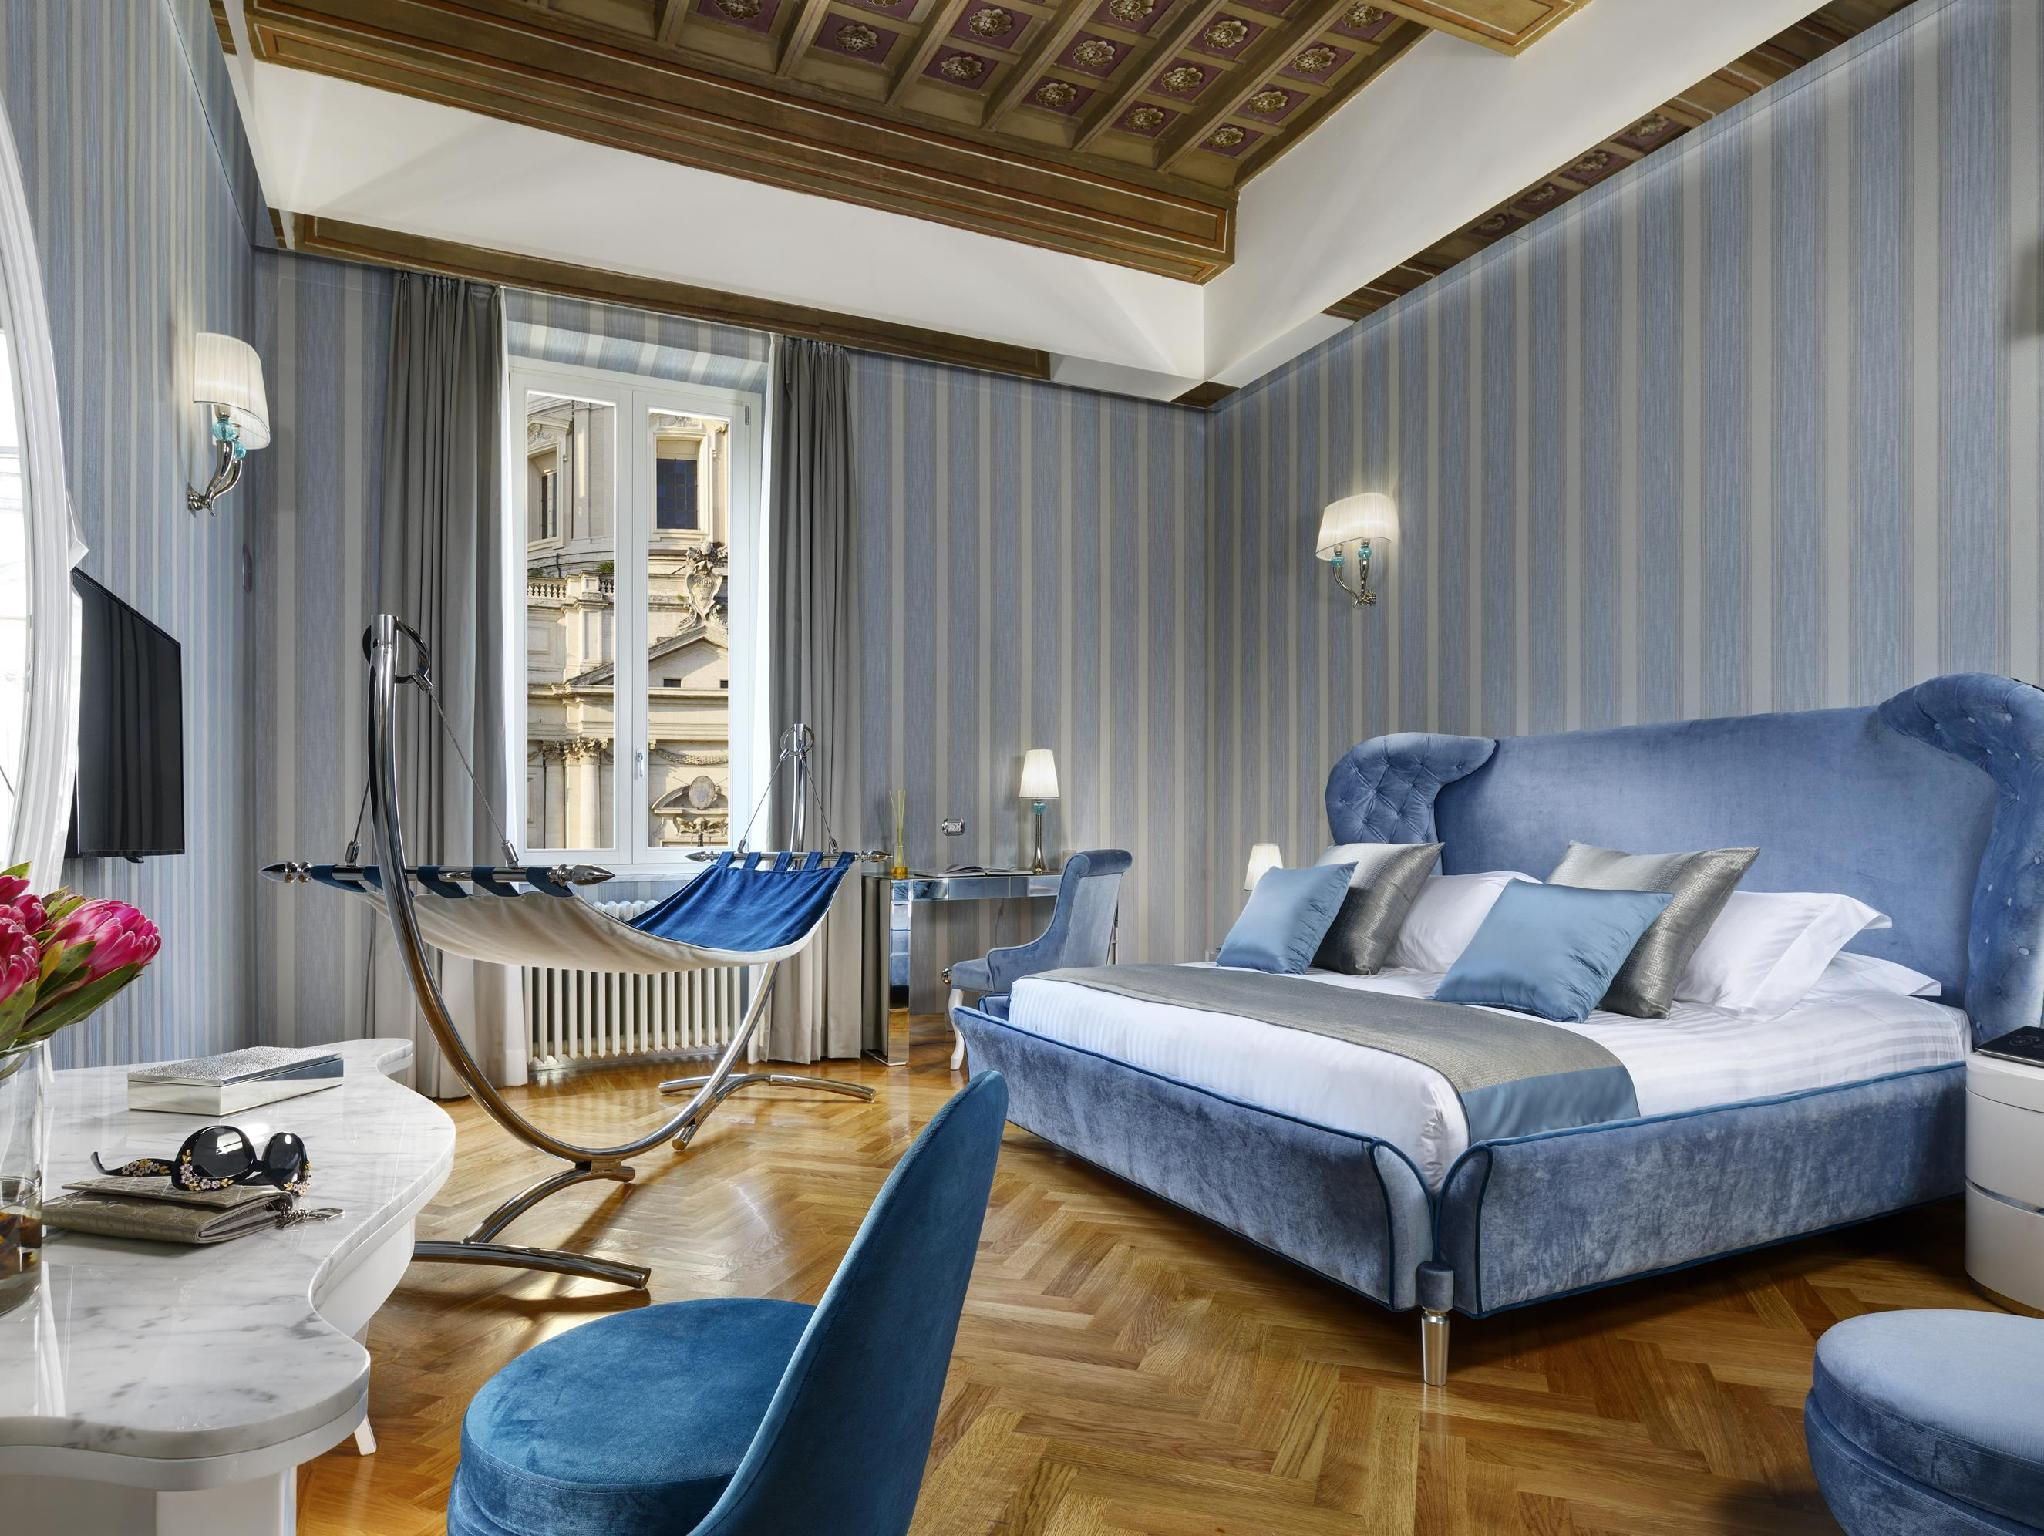 About Lifestyle Suites Rome